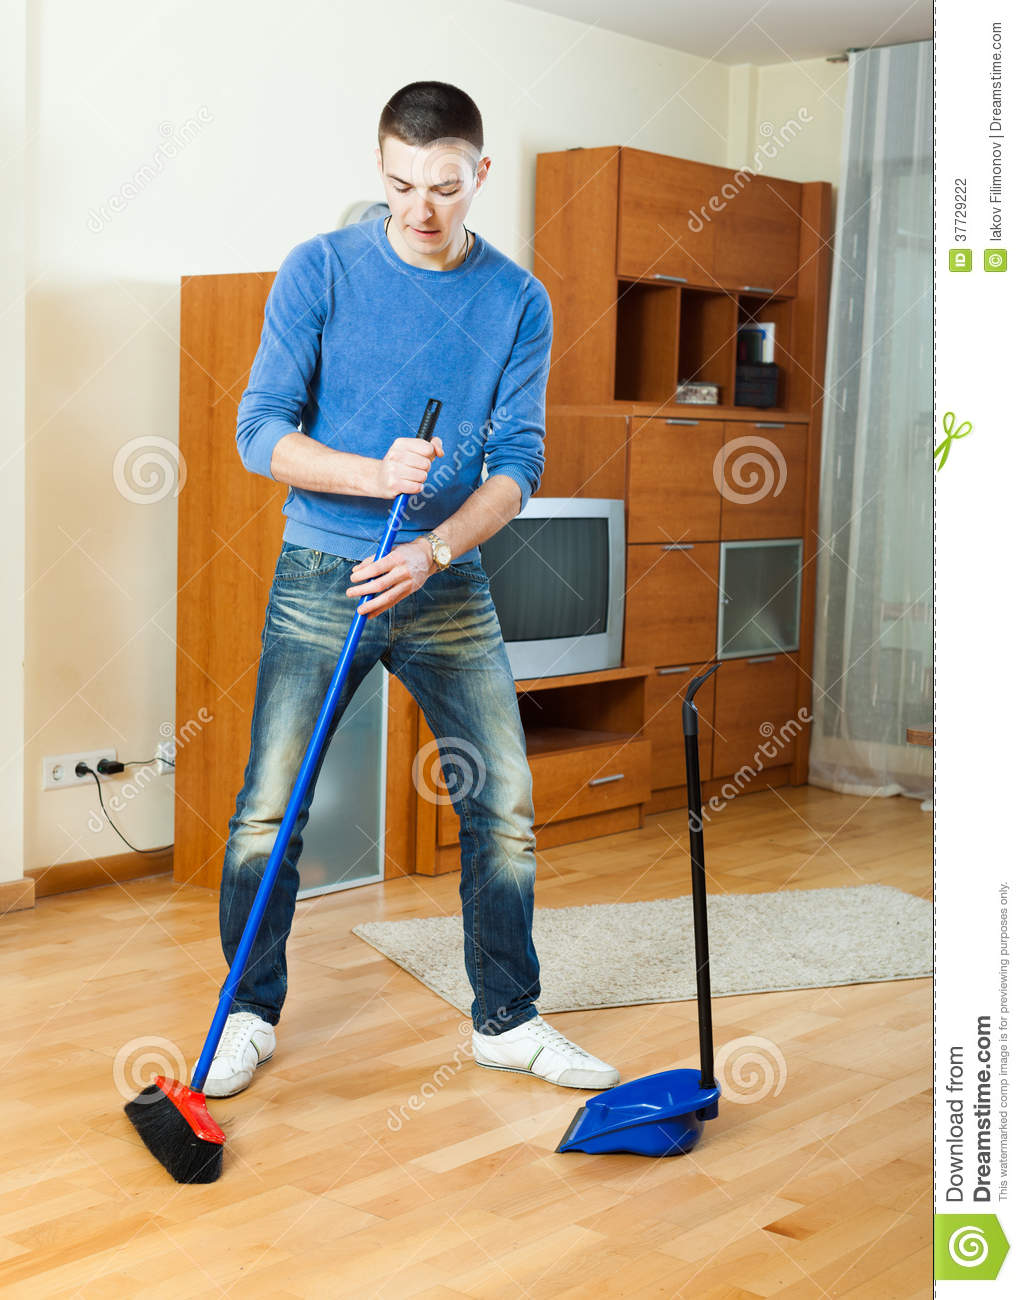 Man Sweeping The Floor At Home Stock Photography Image